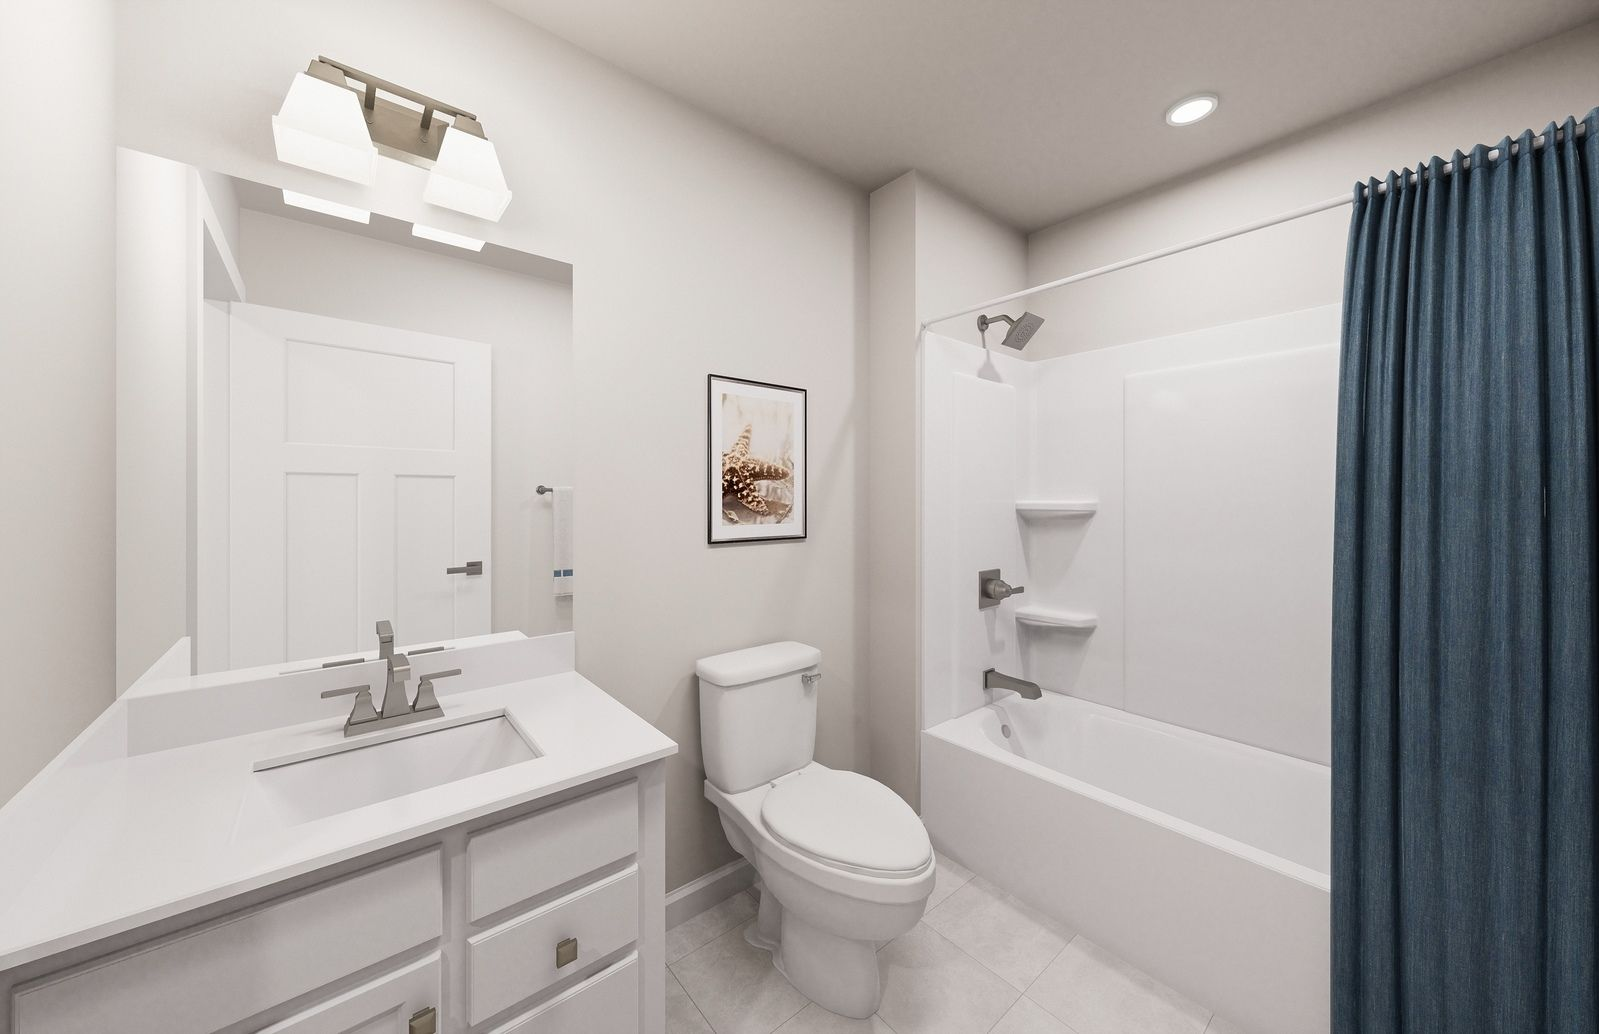 Bathroom featured in the Eden Cay By Ryan Homes in Charlotte, NC